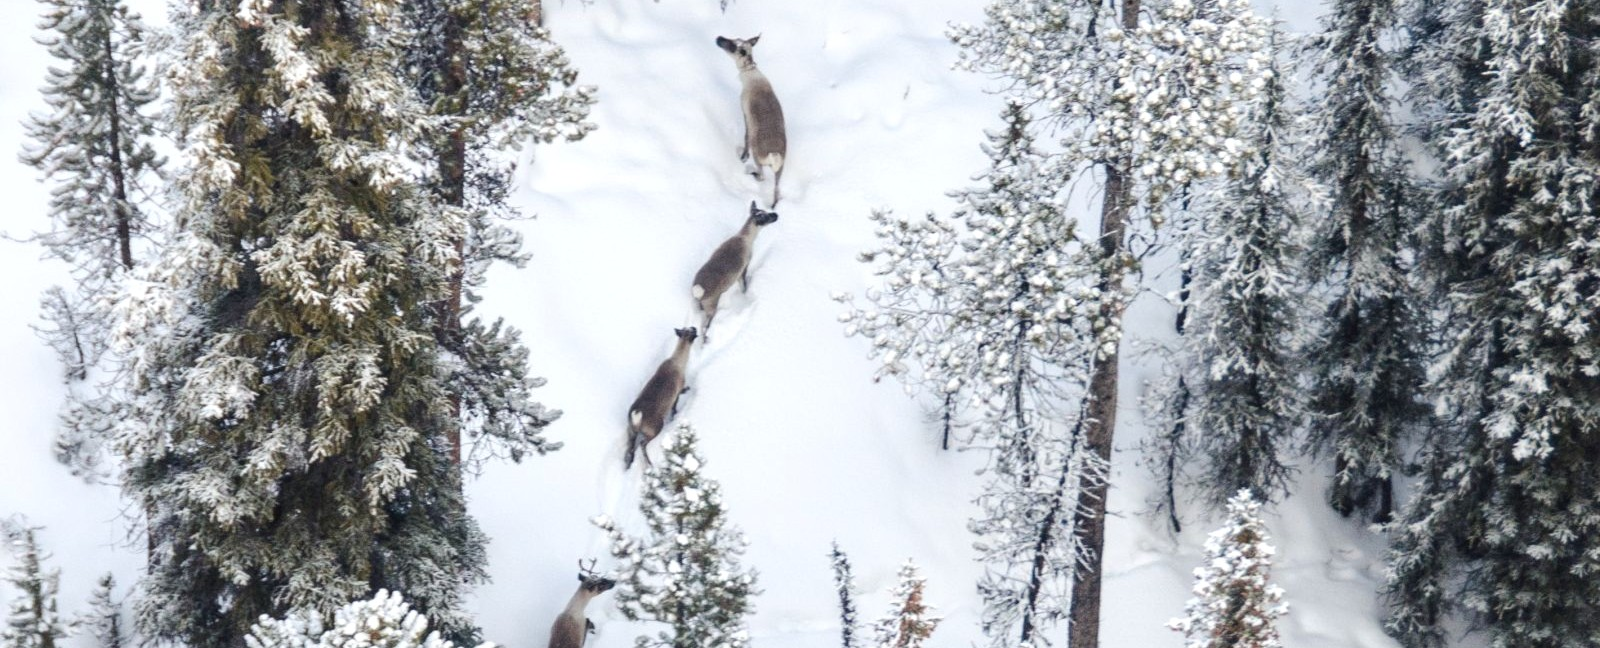 Photo: An aerial view of three caribou walking through snow in a forest